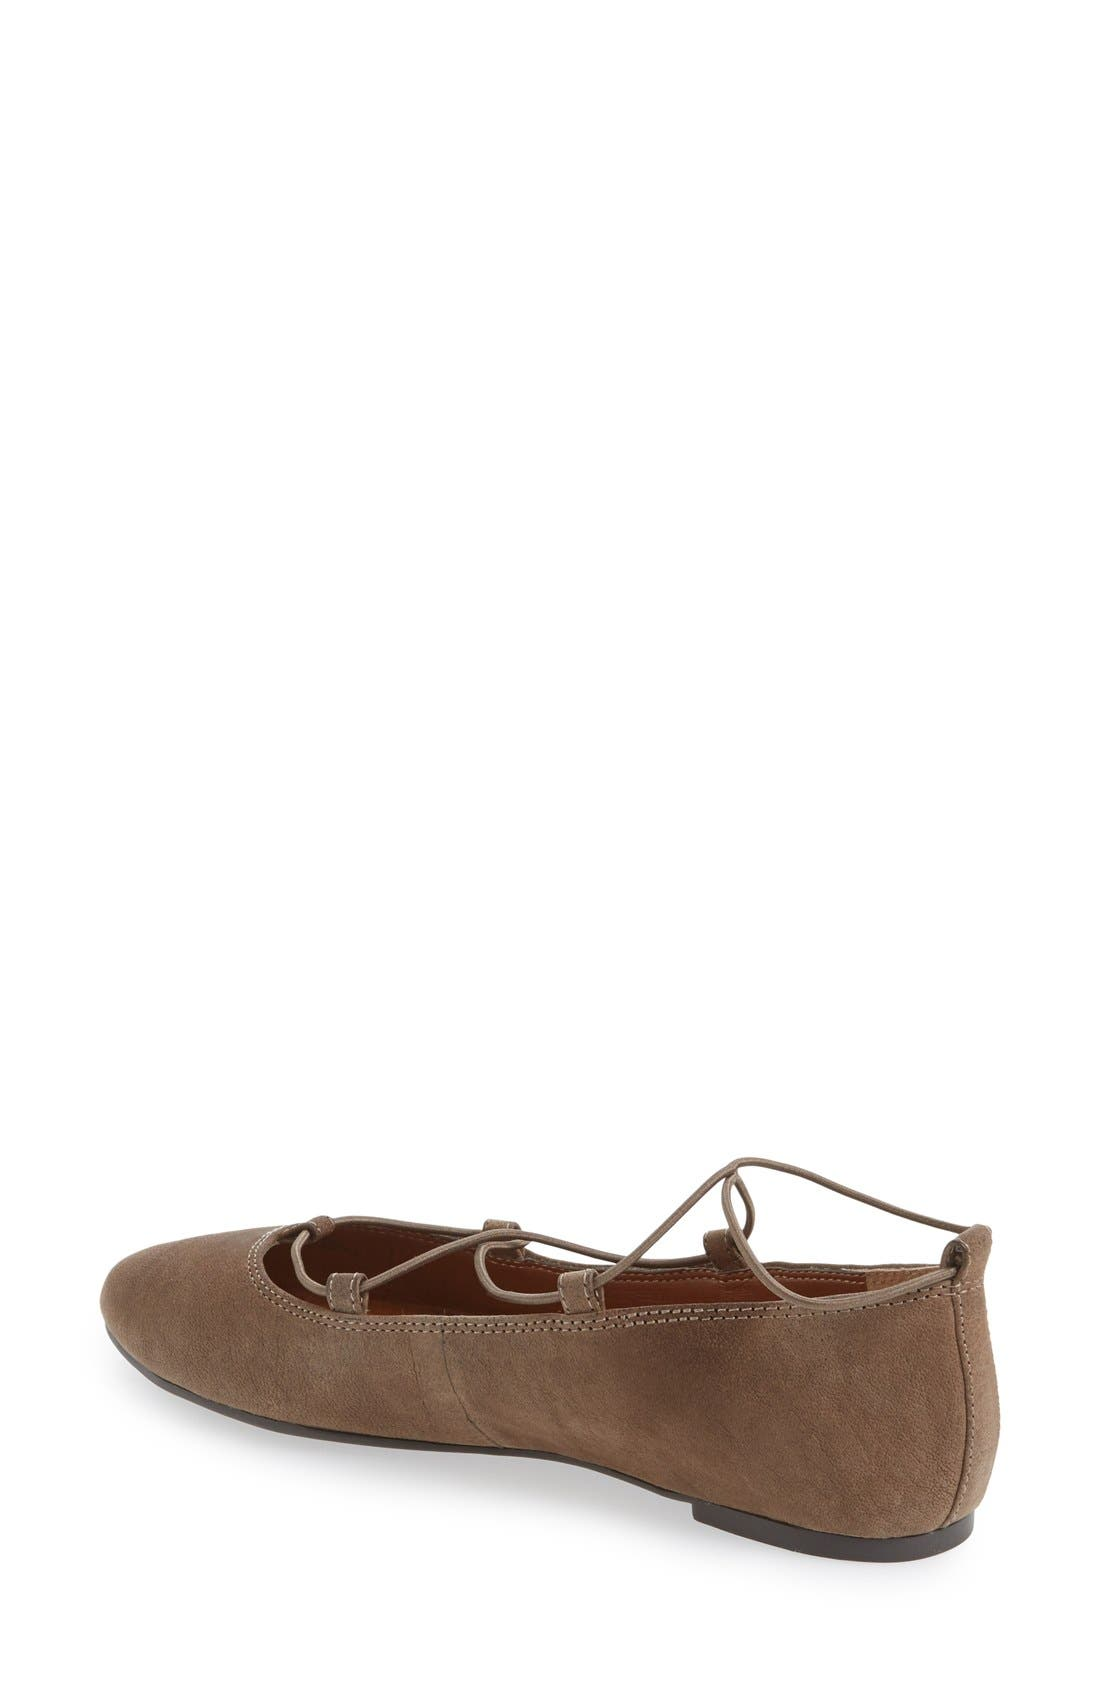 'Aviee' Lace-Up Flat,                             Alternate thumbnail 15, color,